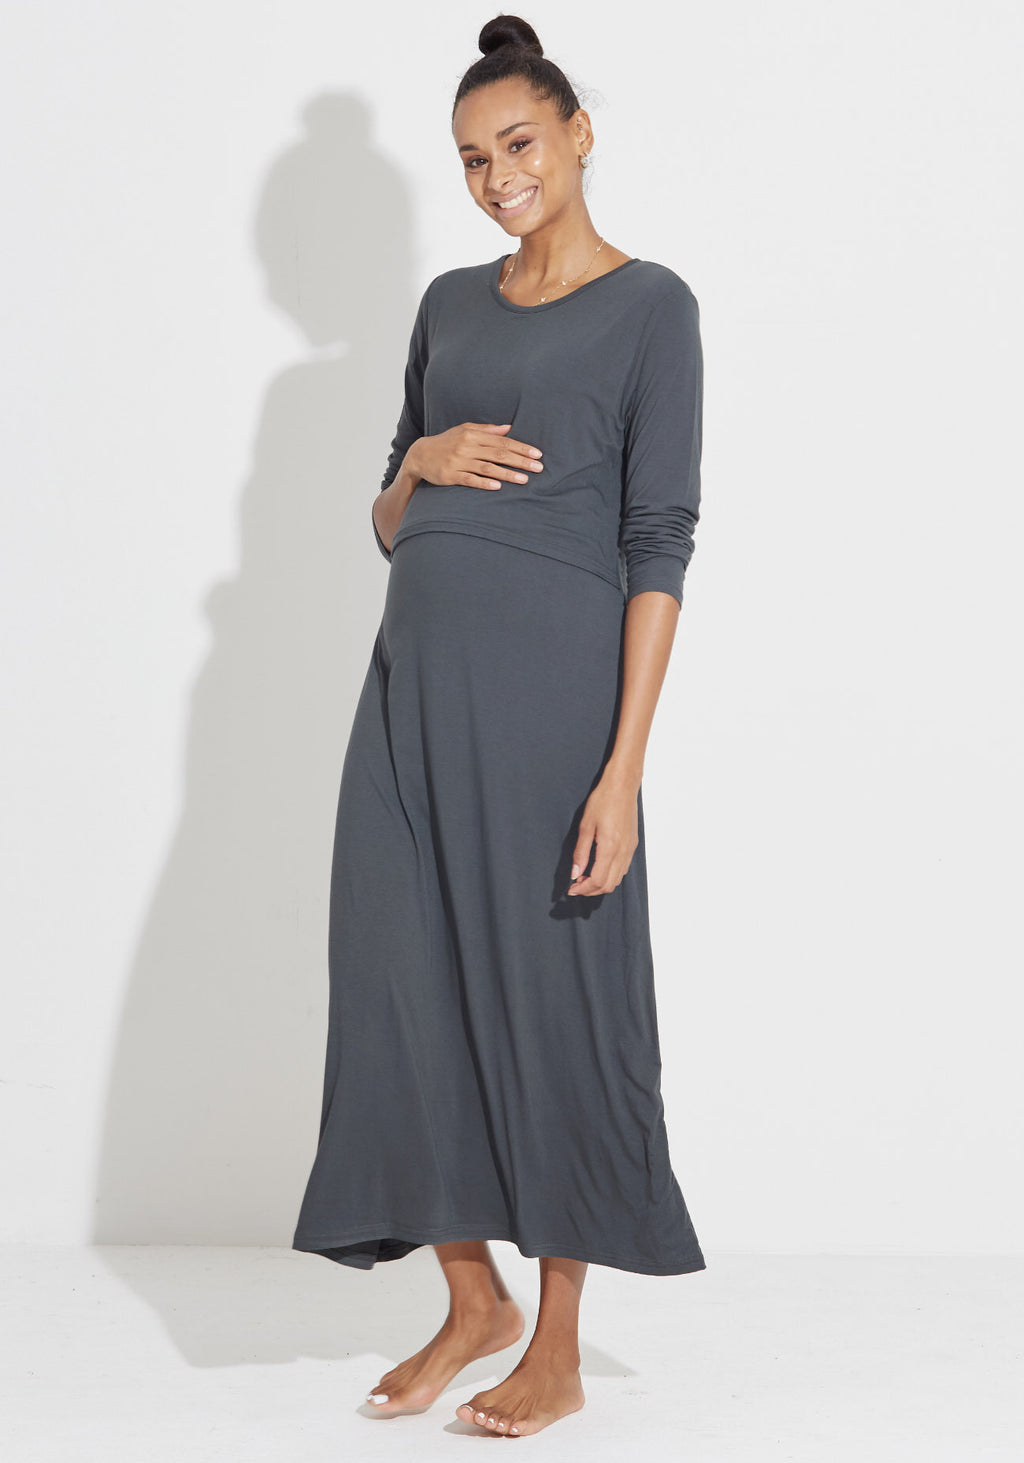 FLAP JERSEY NURSING DRESS